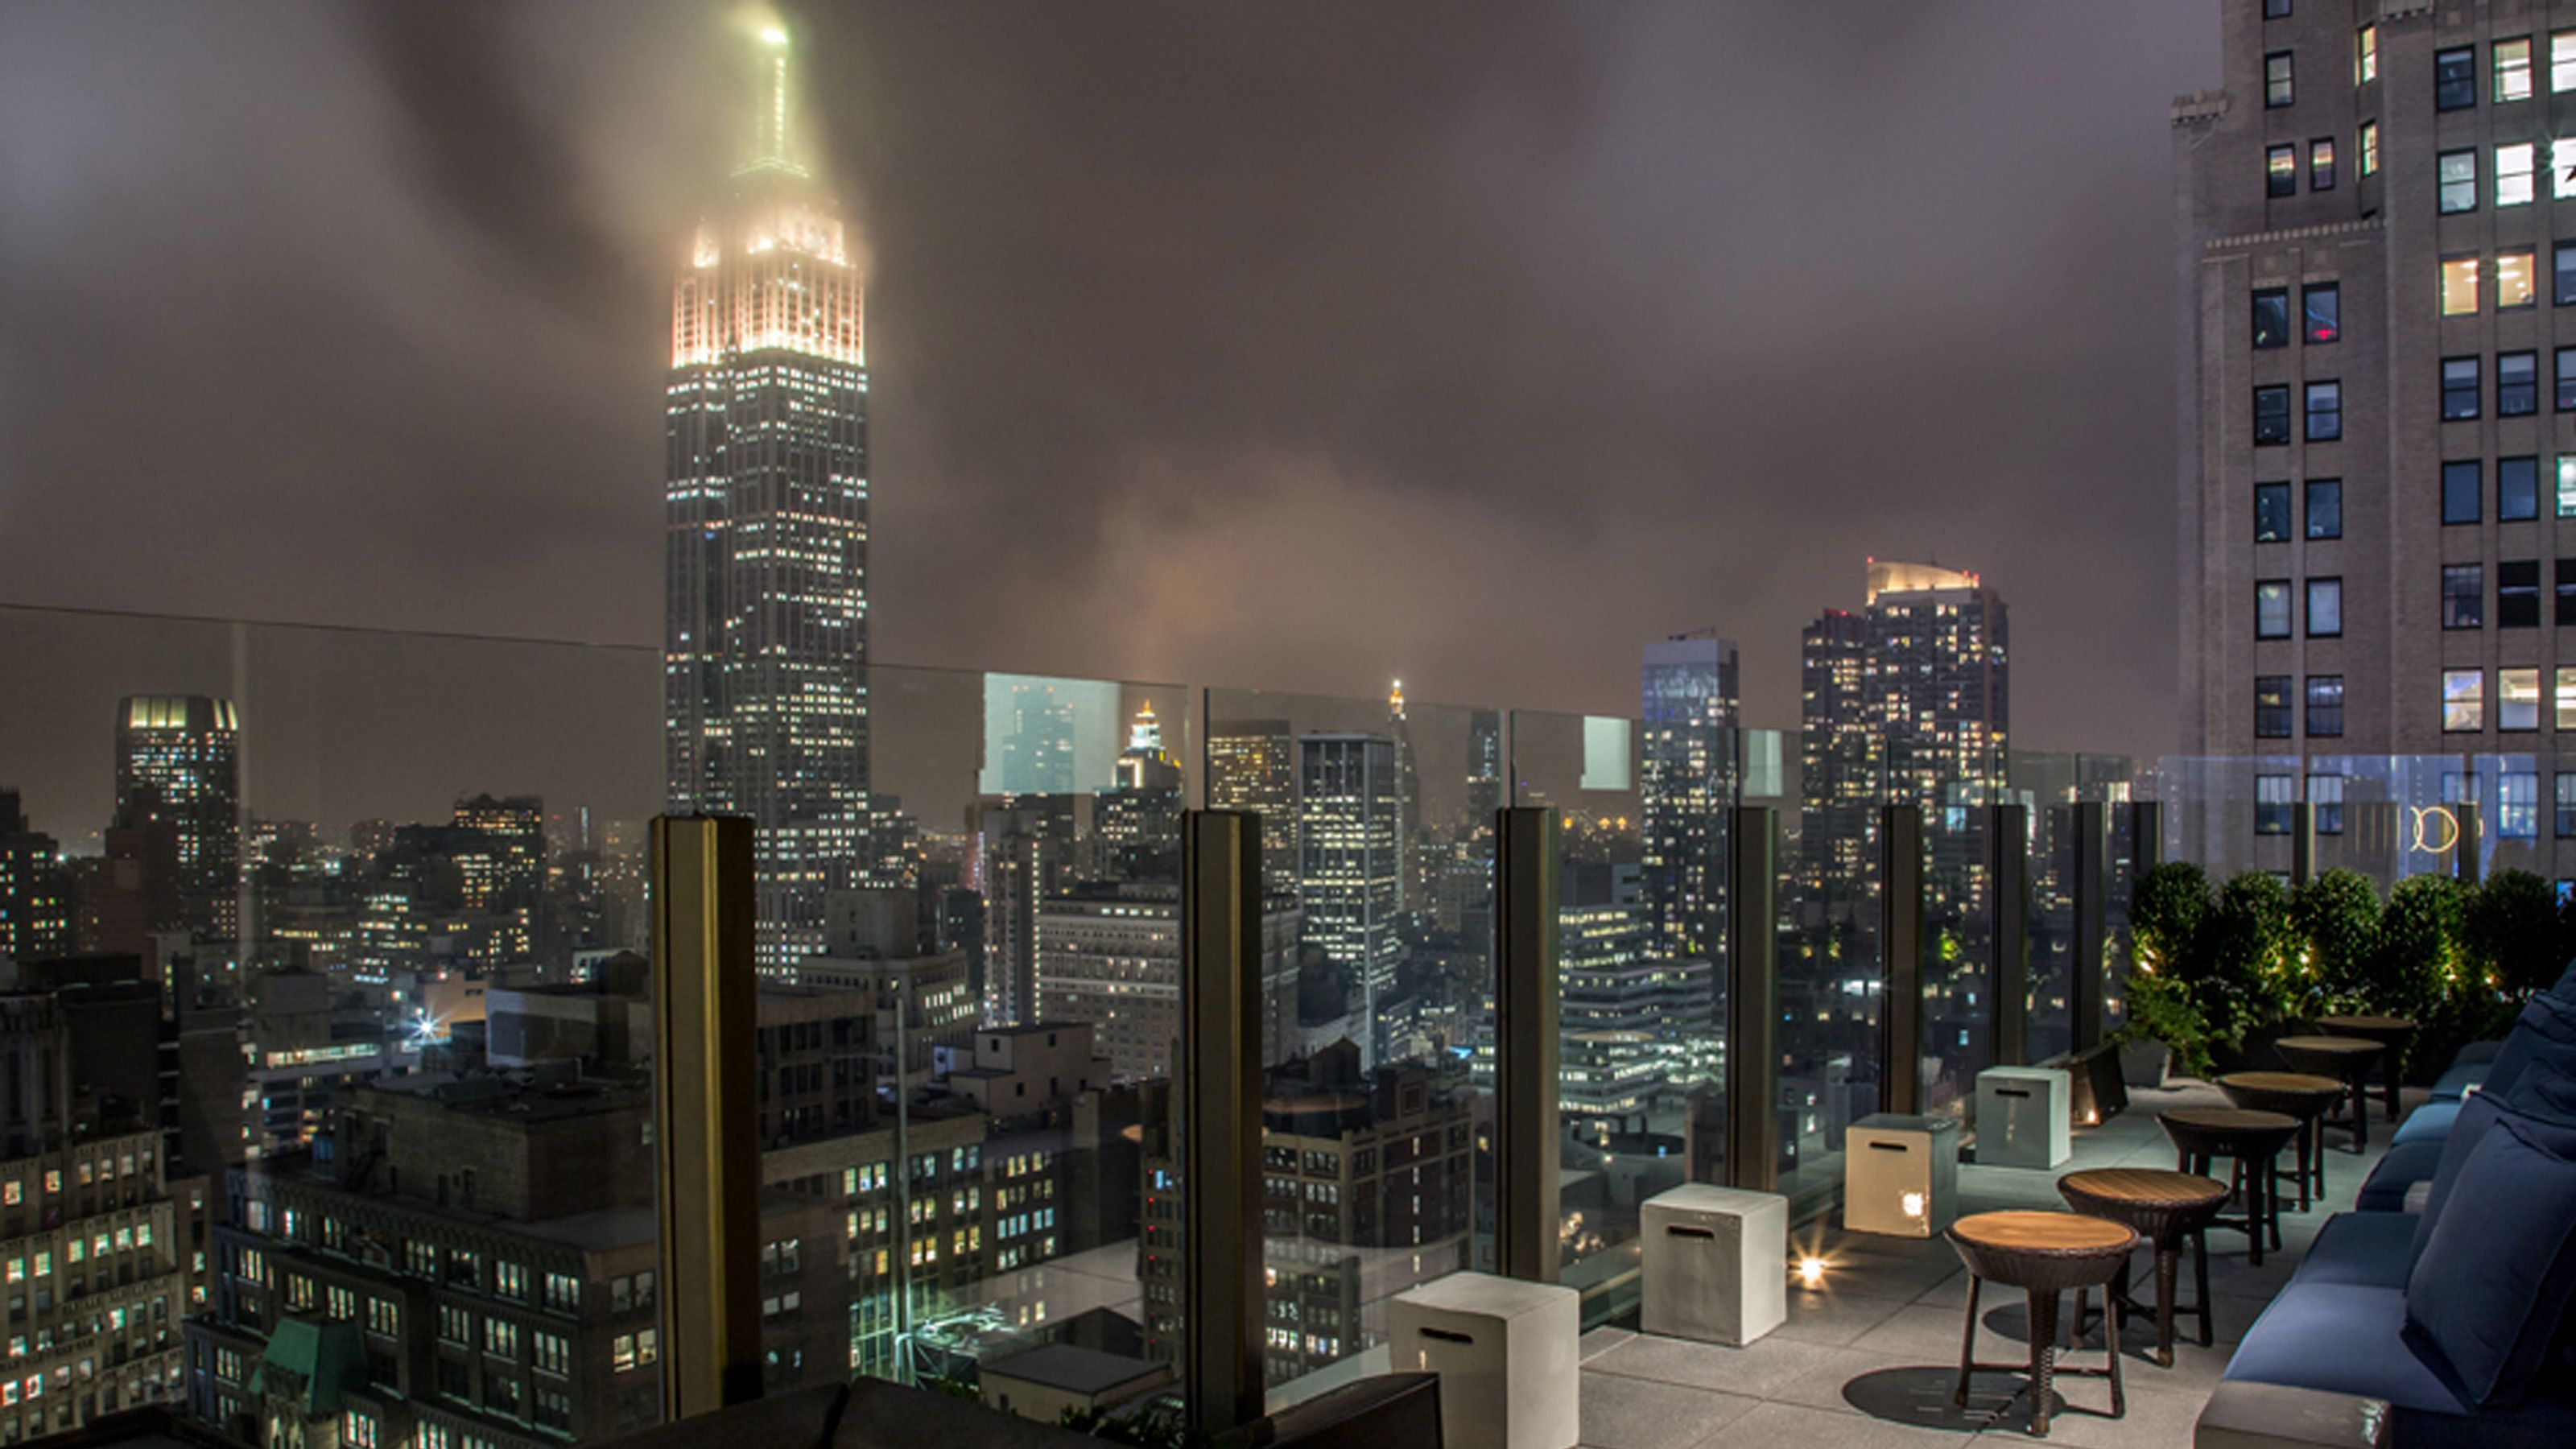 Rooftop view of the Empire State Building at night in New York